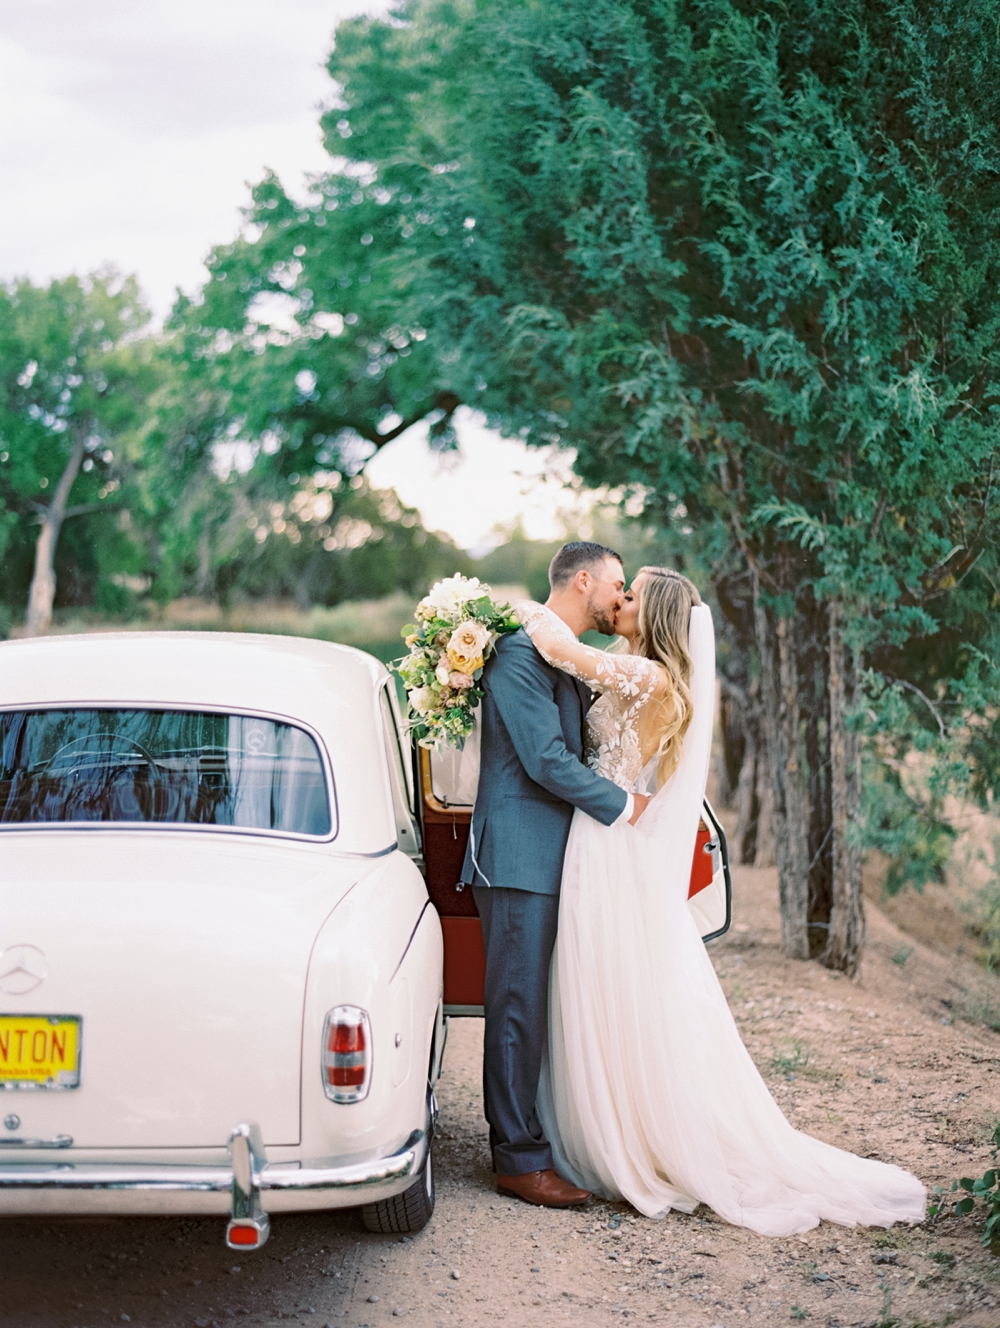 Jacie & Brycen - La Mesita Ranch Wedding   Santa Fe, NMVendors: Ceremony & Reception Venue: La Mesita Ranch Estate    Wedding Planner: For the Love Events   Bride's Wedding Dress: Hayley Paige, purchased at Anna Bé   Shoes: Betsey Johnson   Bridesmaids' Dresses: Adrianna Papell; Amsale; Jenny Yoo; Joanna August   Groom's & Groomsmen's Attire: The Black Tux   Flowers: Floriography Flowers   Invitations & Paper Goods: Olive Branch & Co.  Additional Paper Products: Pennysmith's; Ashley Rose Hamilton   Cake: Miel Bakery   Rentals: Classic Party Rentals; For the Love EventsFeature on BRIDES